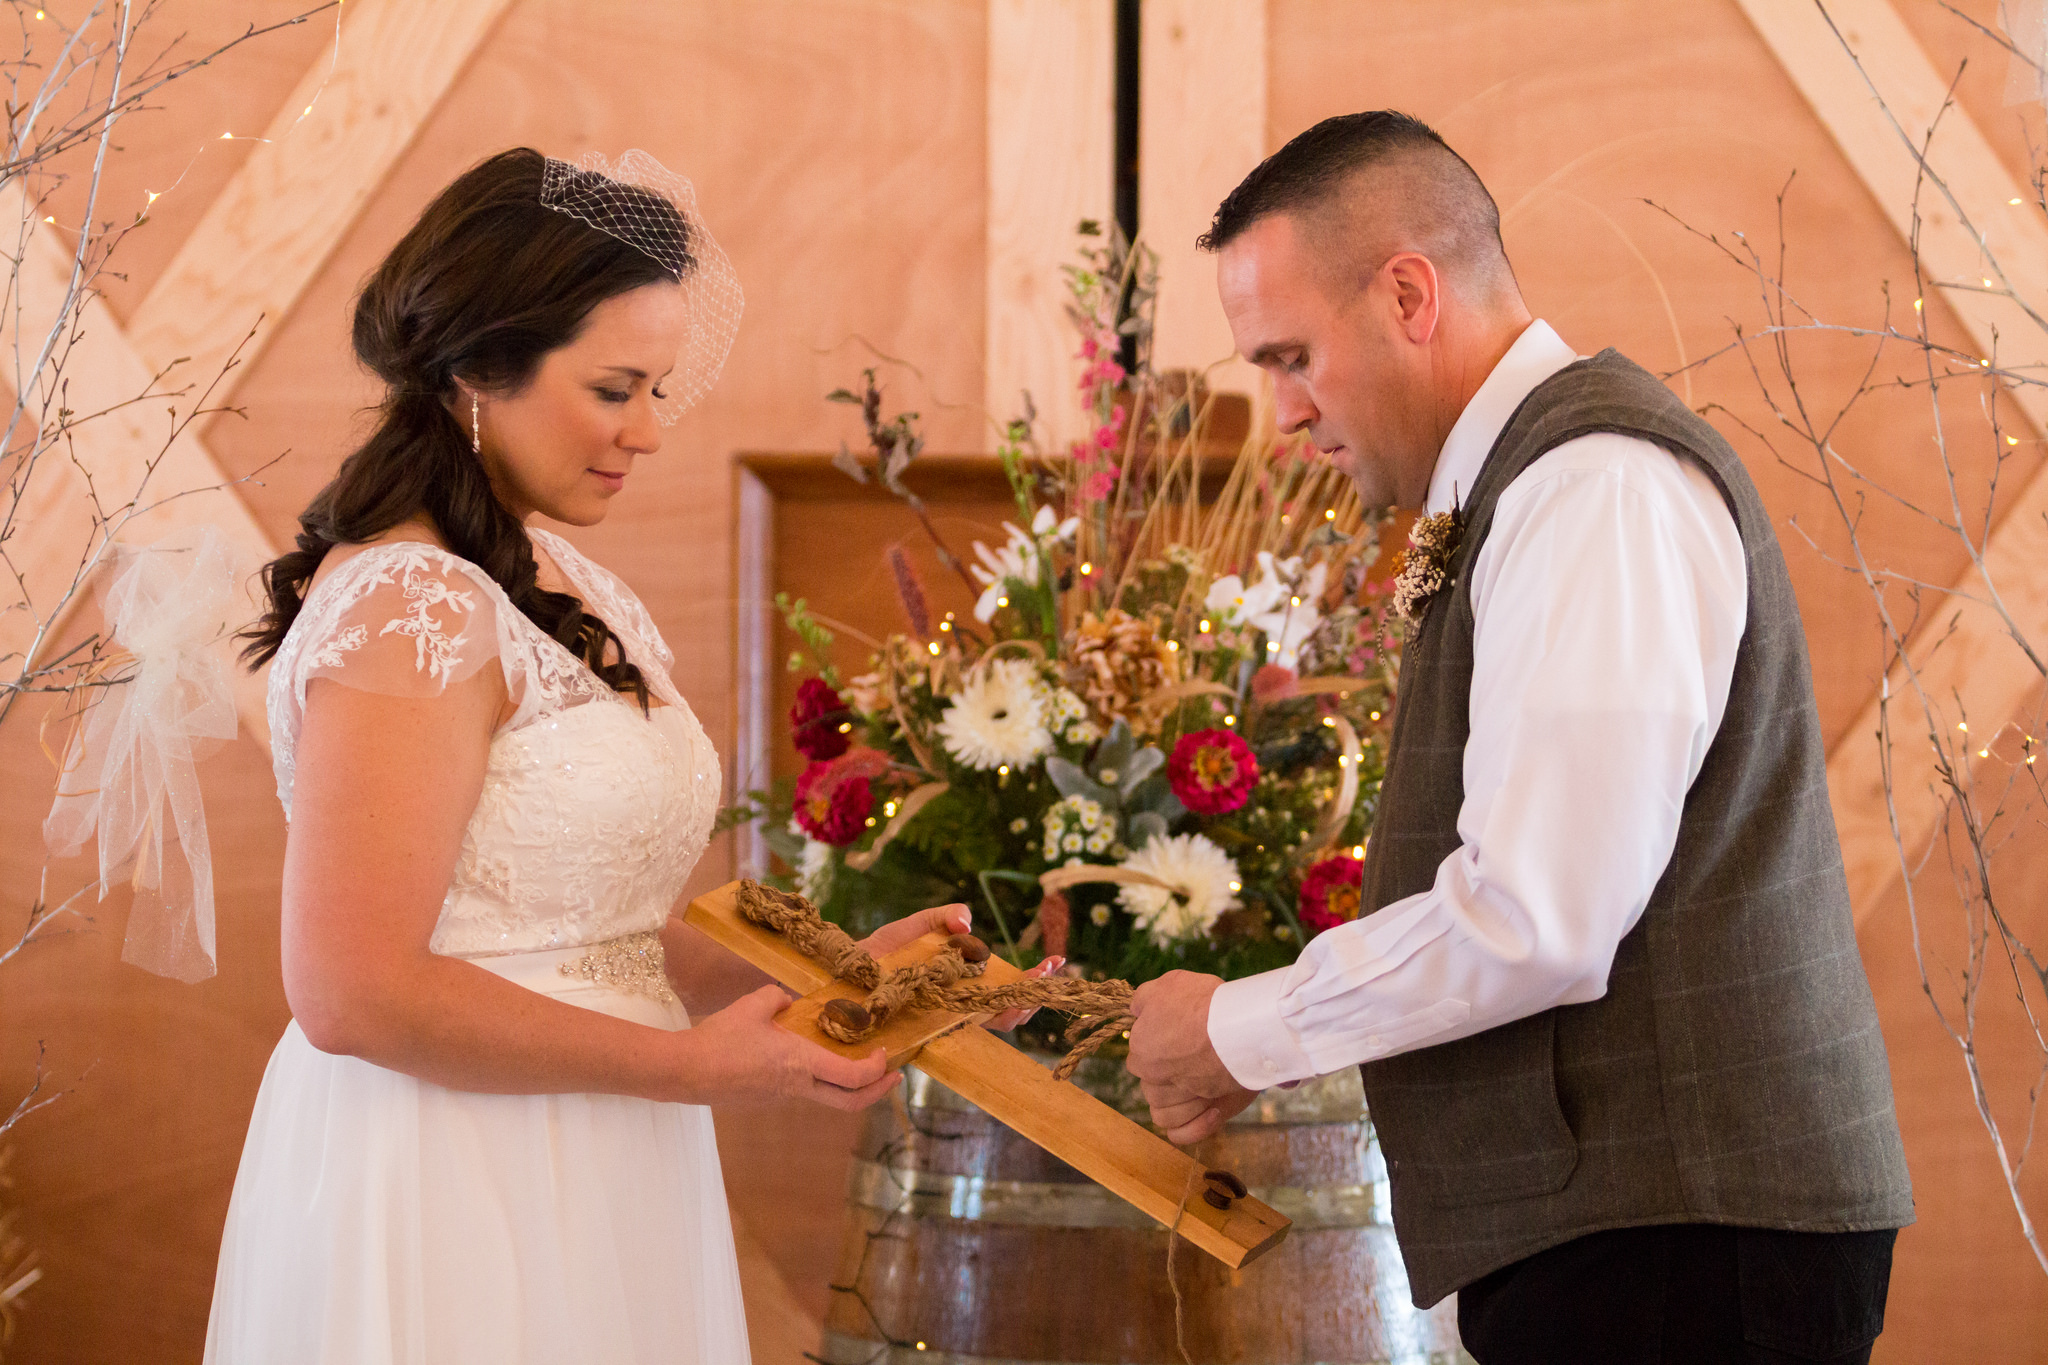 The bride and groom had a very symbolic and meaningful ceremony. Photo by Aaron B Photos.